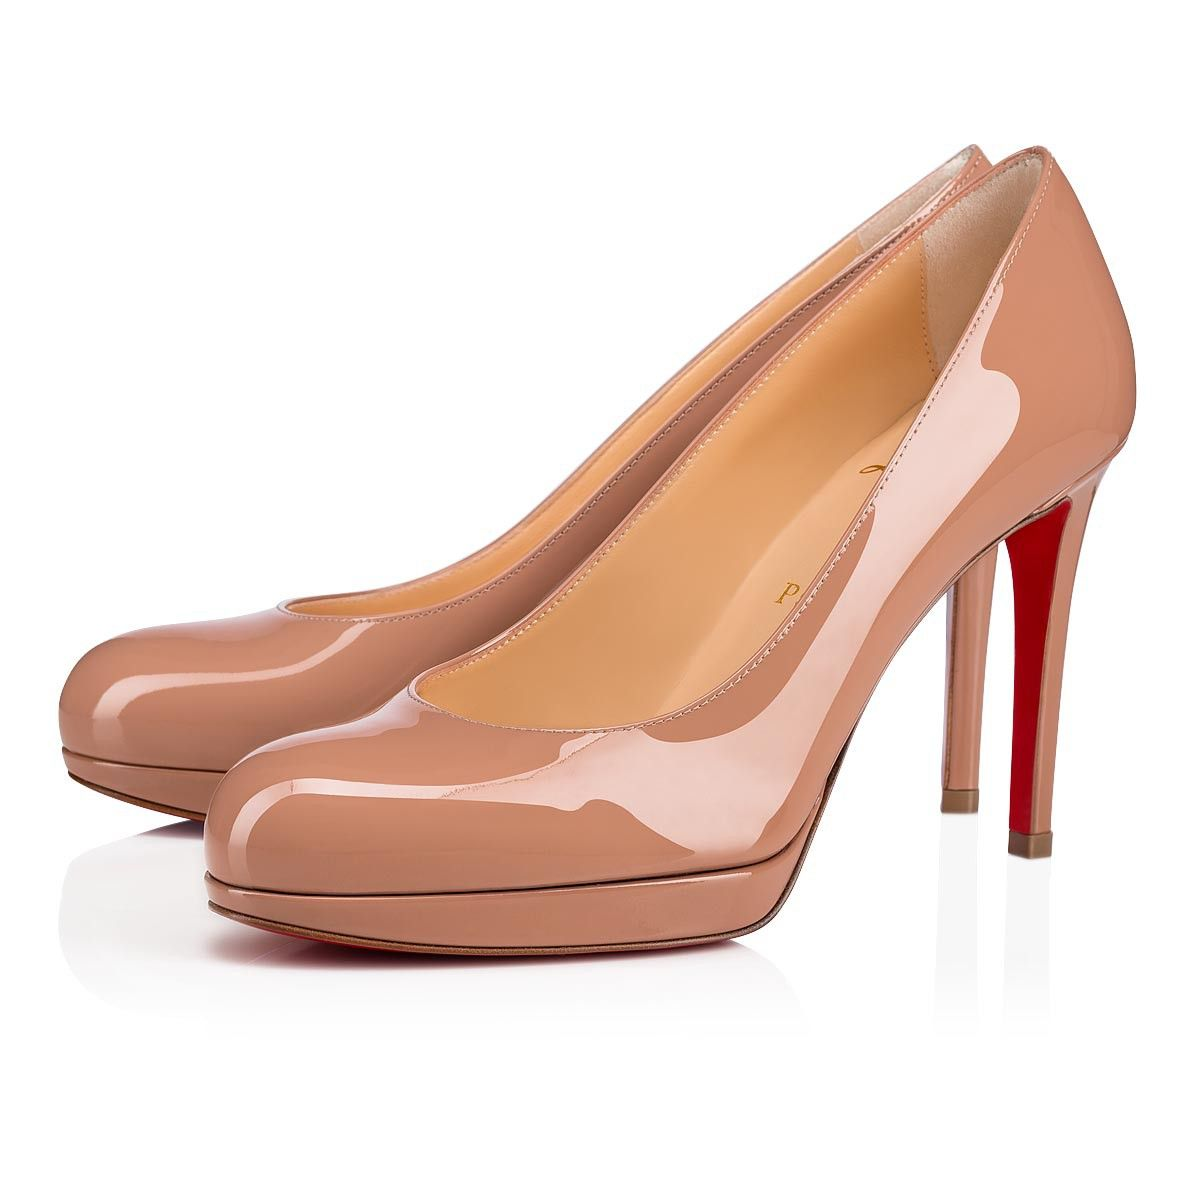 outlet store 794a1 c165e NEW SIMPLE PUMP VERNIS CALF 100 Nude Cuir De Veau Vernis ...